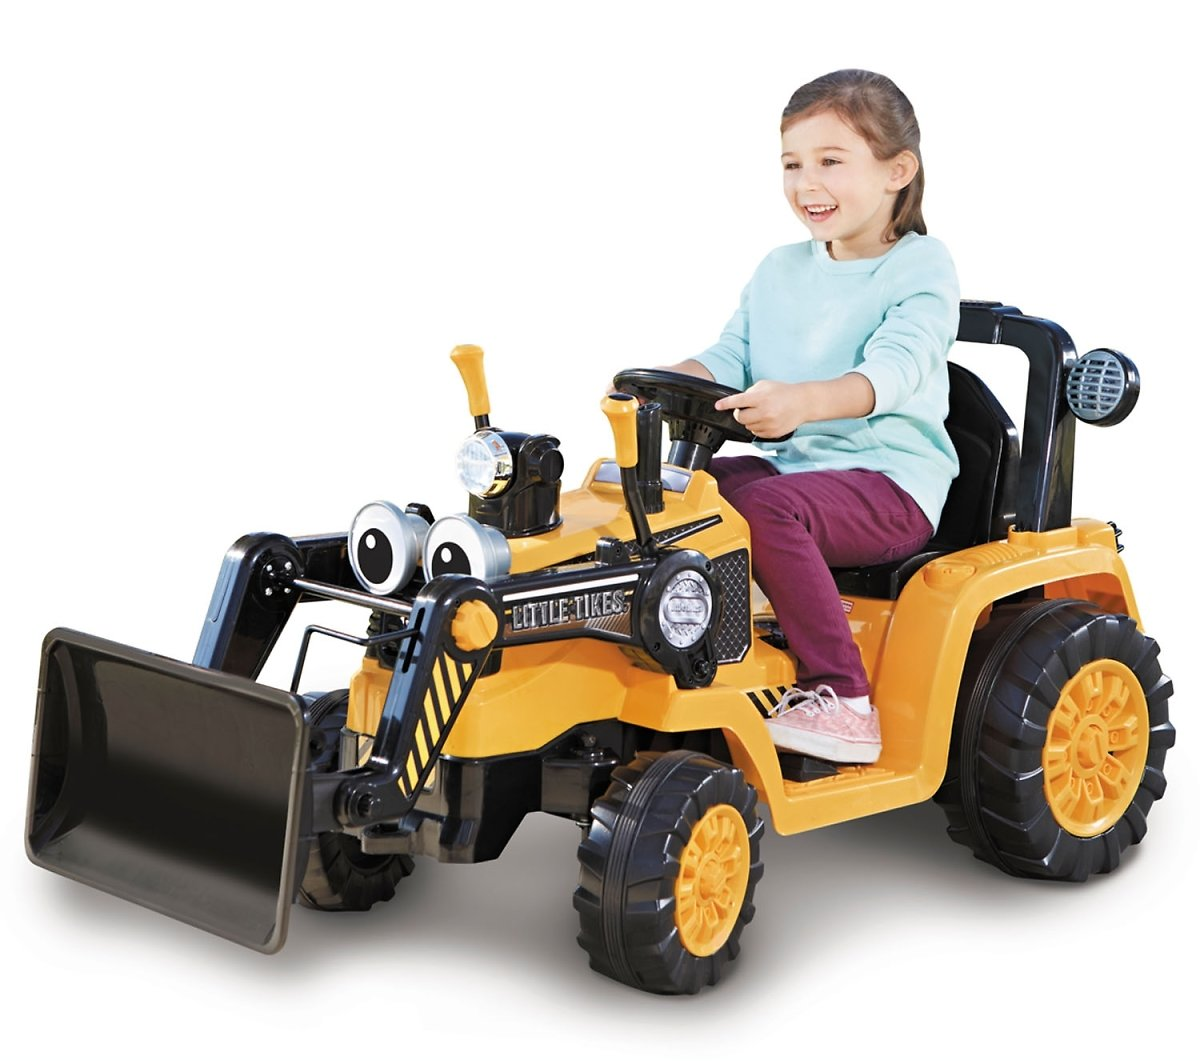 Little Tikes Cozy Dirt Digger Electric 12V Battery Ride On Toy with Digger